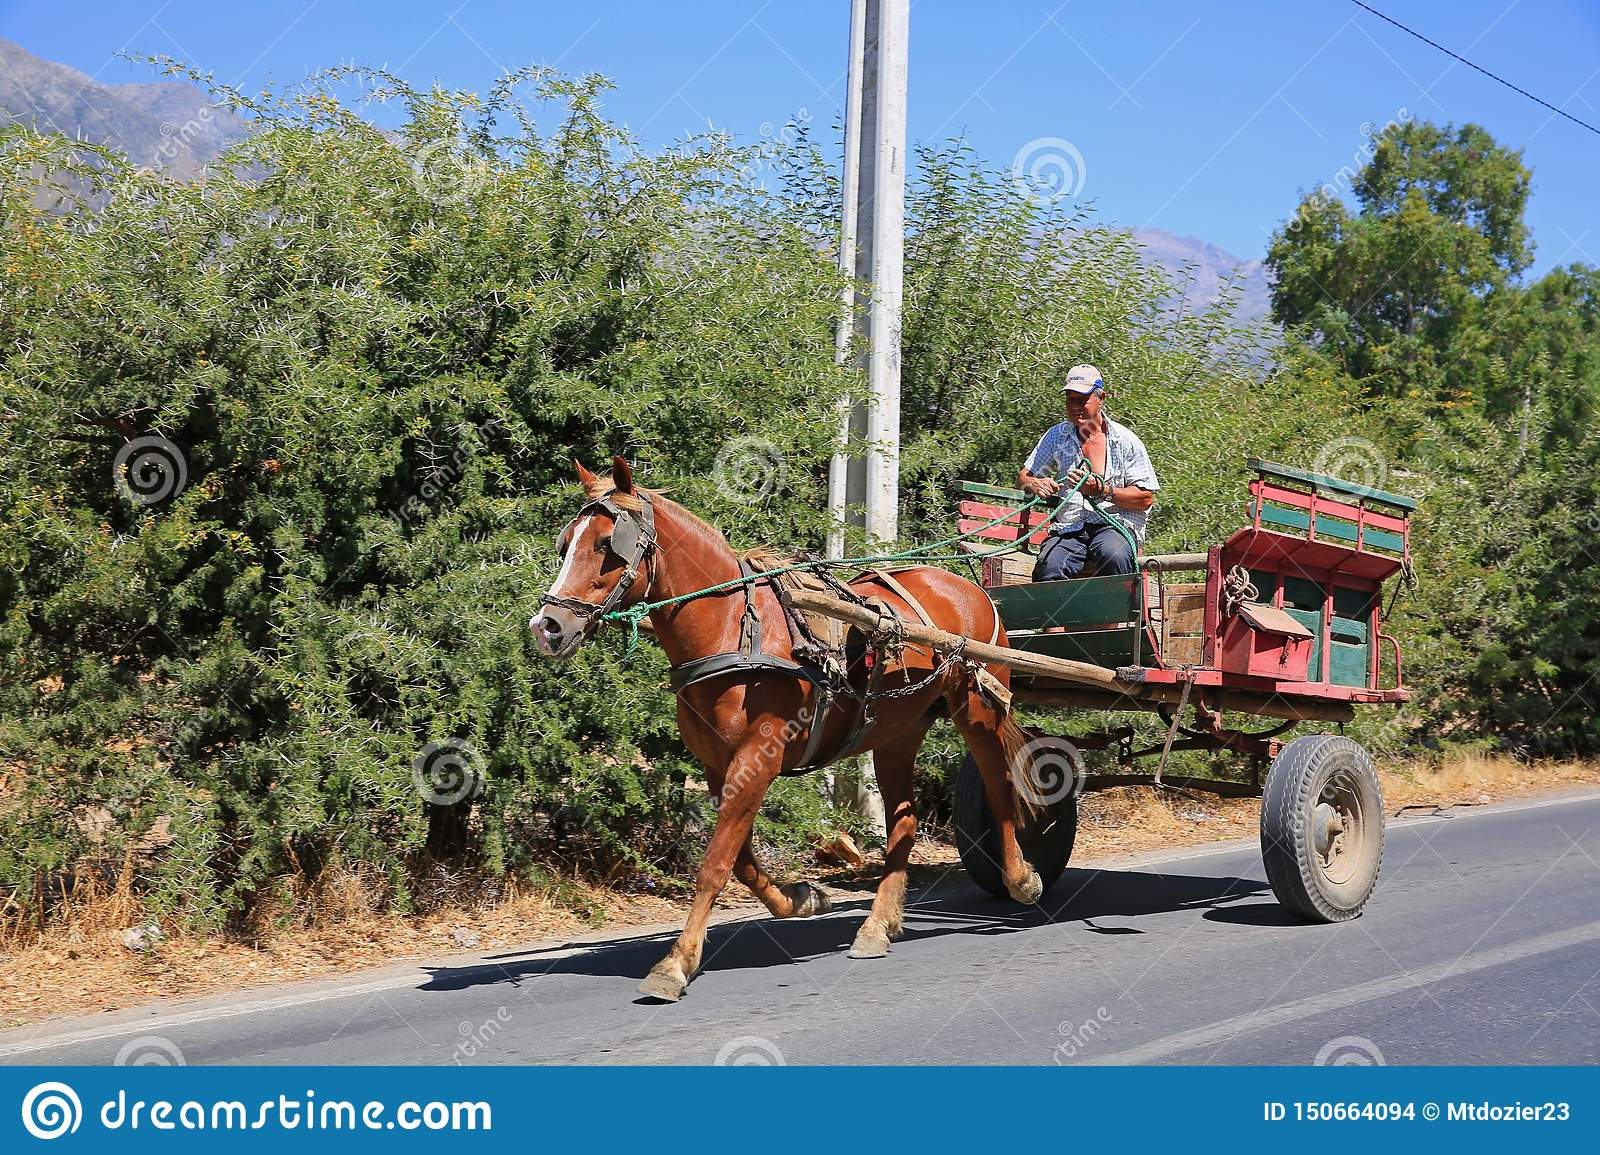 Chilean Farmer Driving Colorful Horse-Drawn Cart